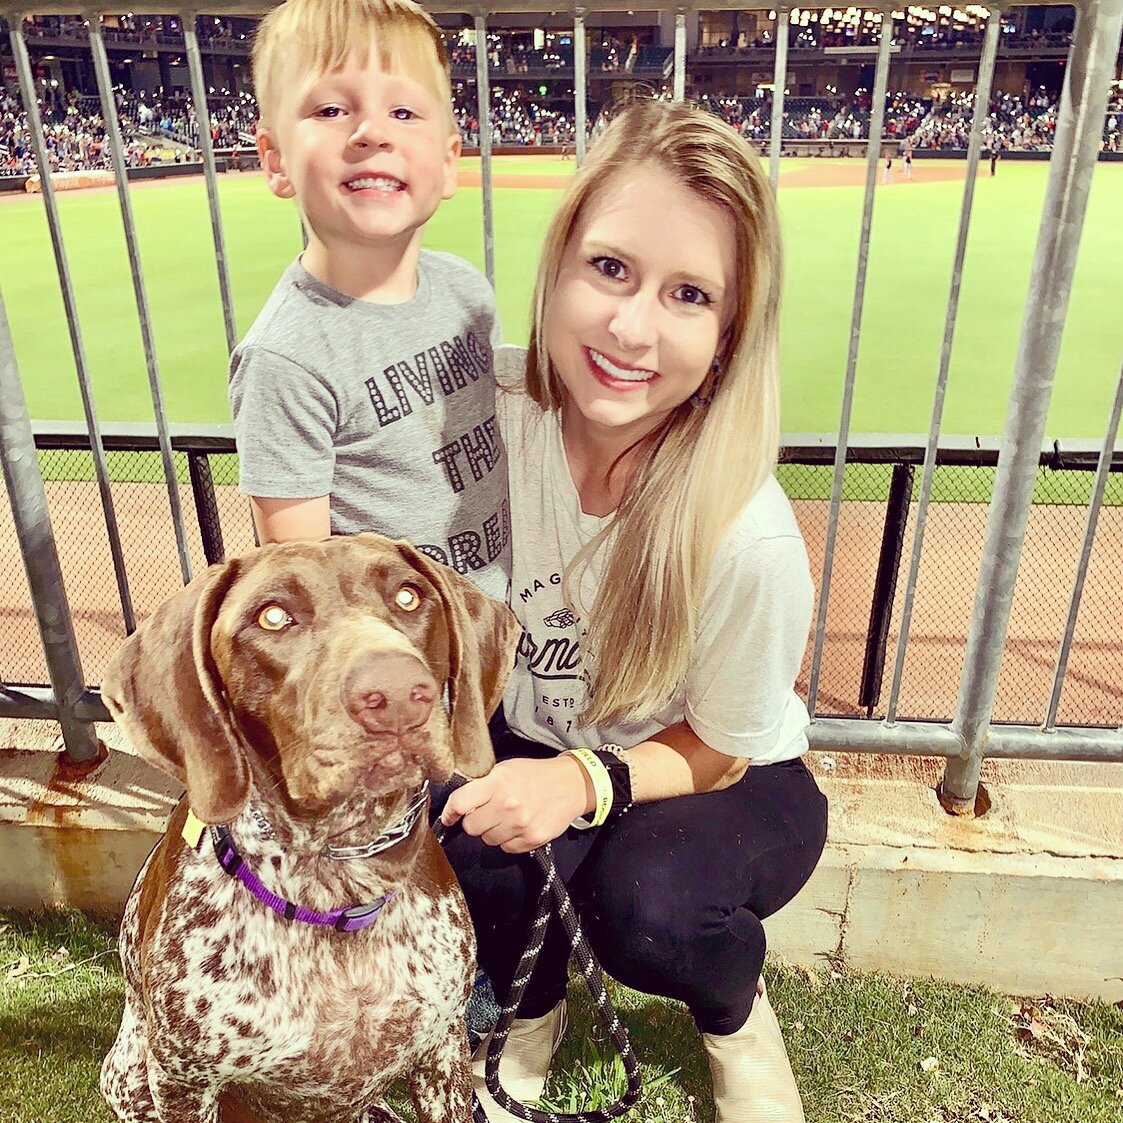 Kaitlyn pictured with her son, Bennett, and dog, Kennedy.